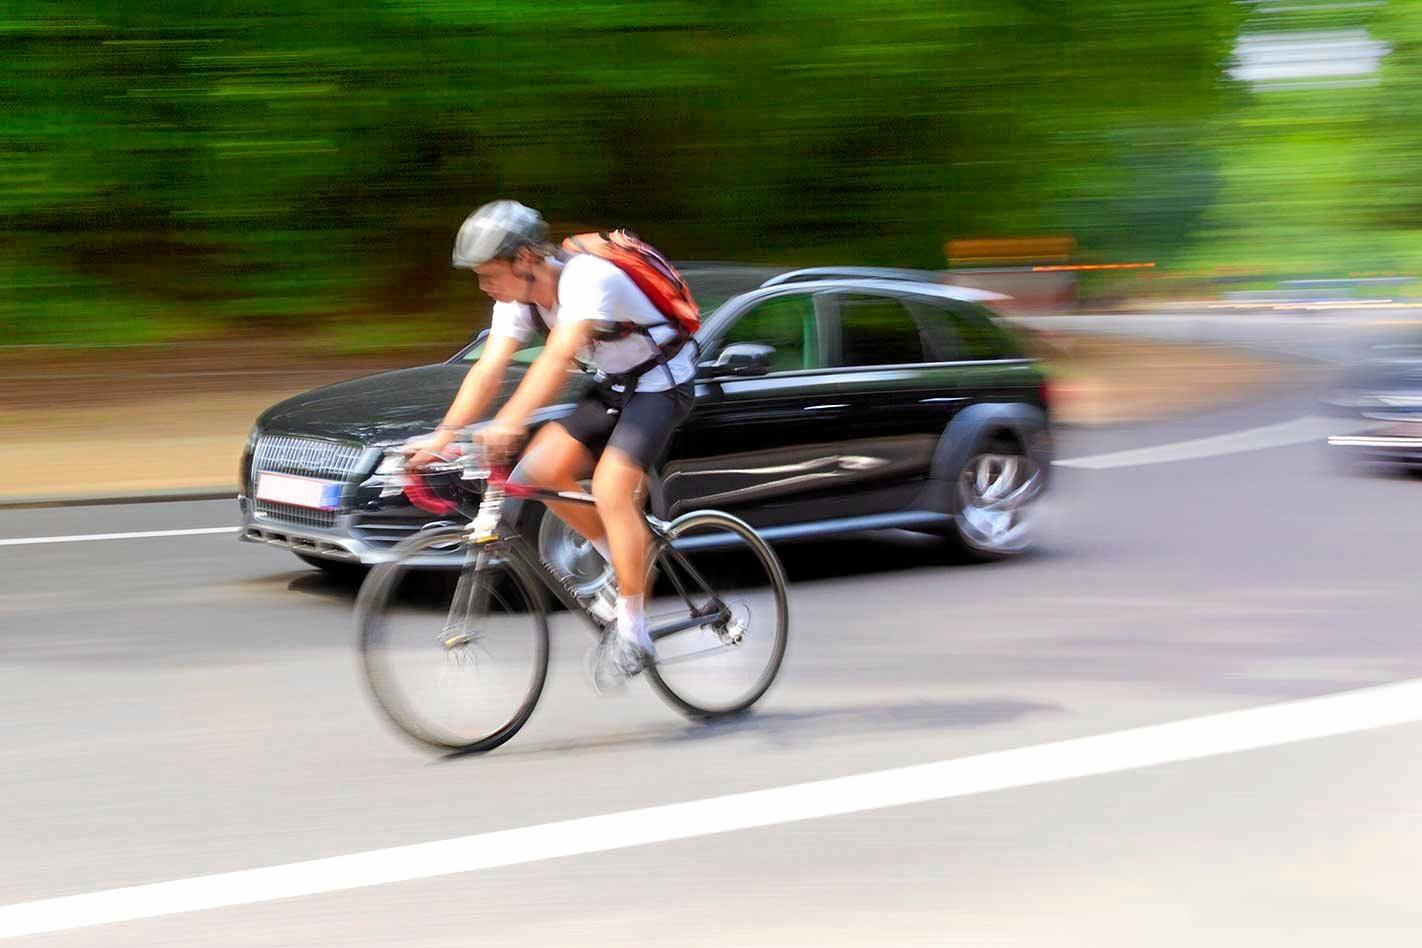 With recent accidents involving cyclists and vehicles there has been an ongoing call for bicycle registrations in New South Wales. Cyclists argue they already pay registration on their vehicles.